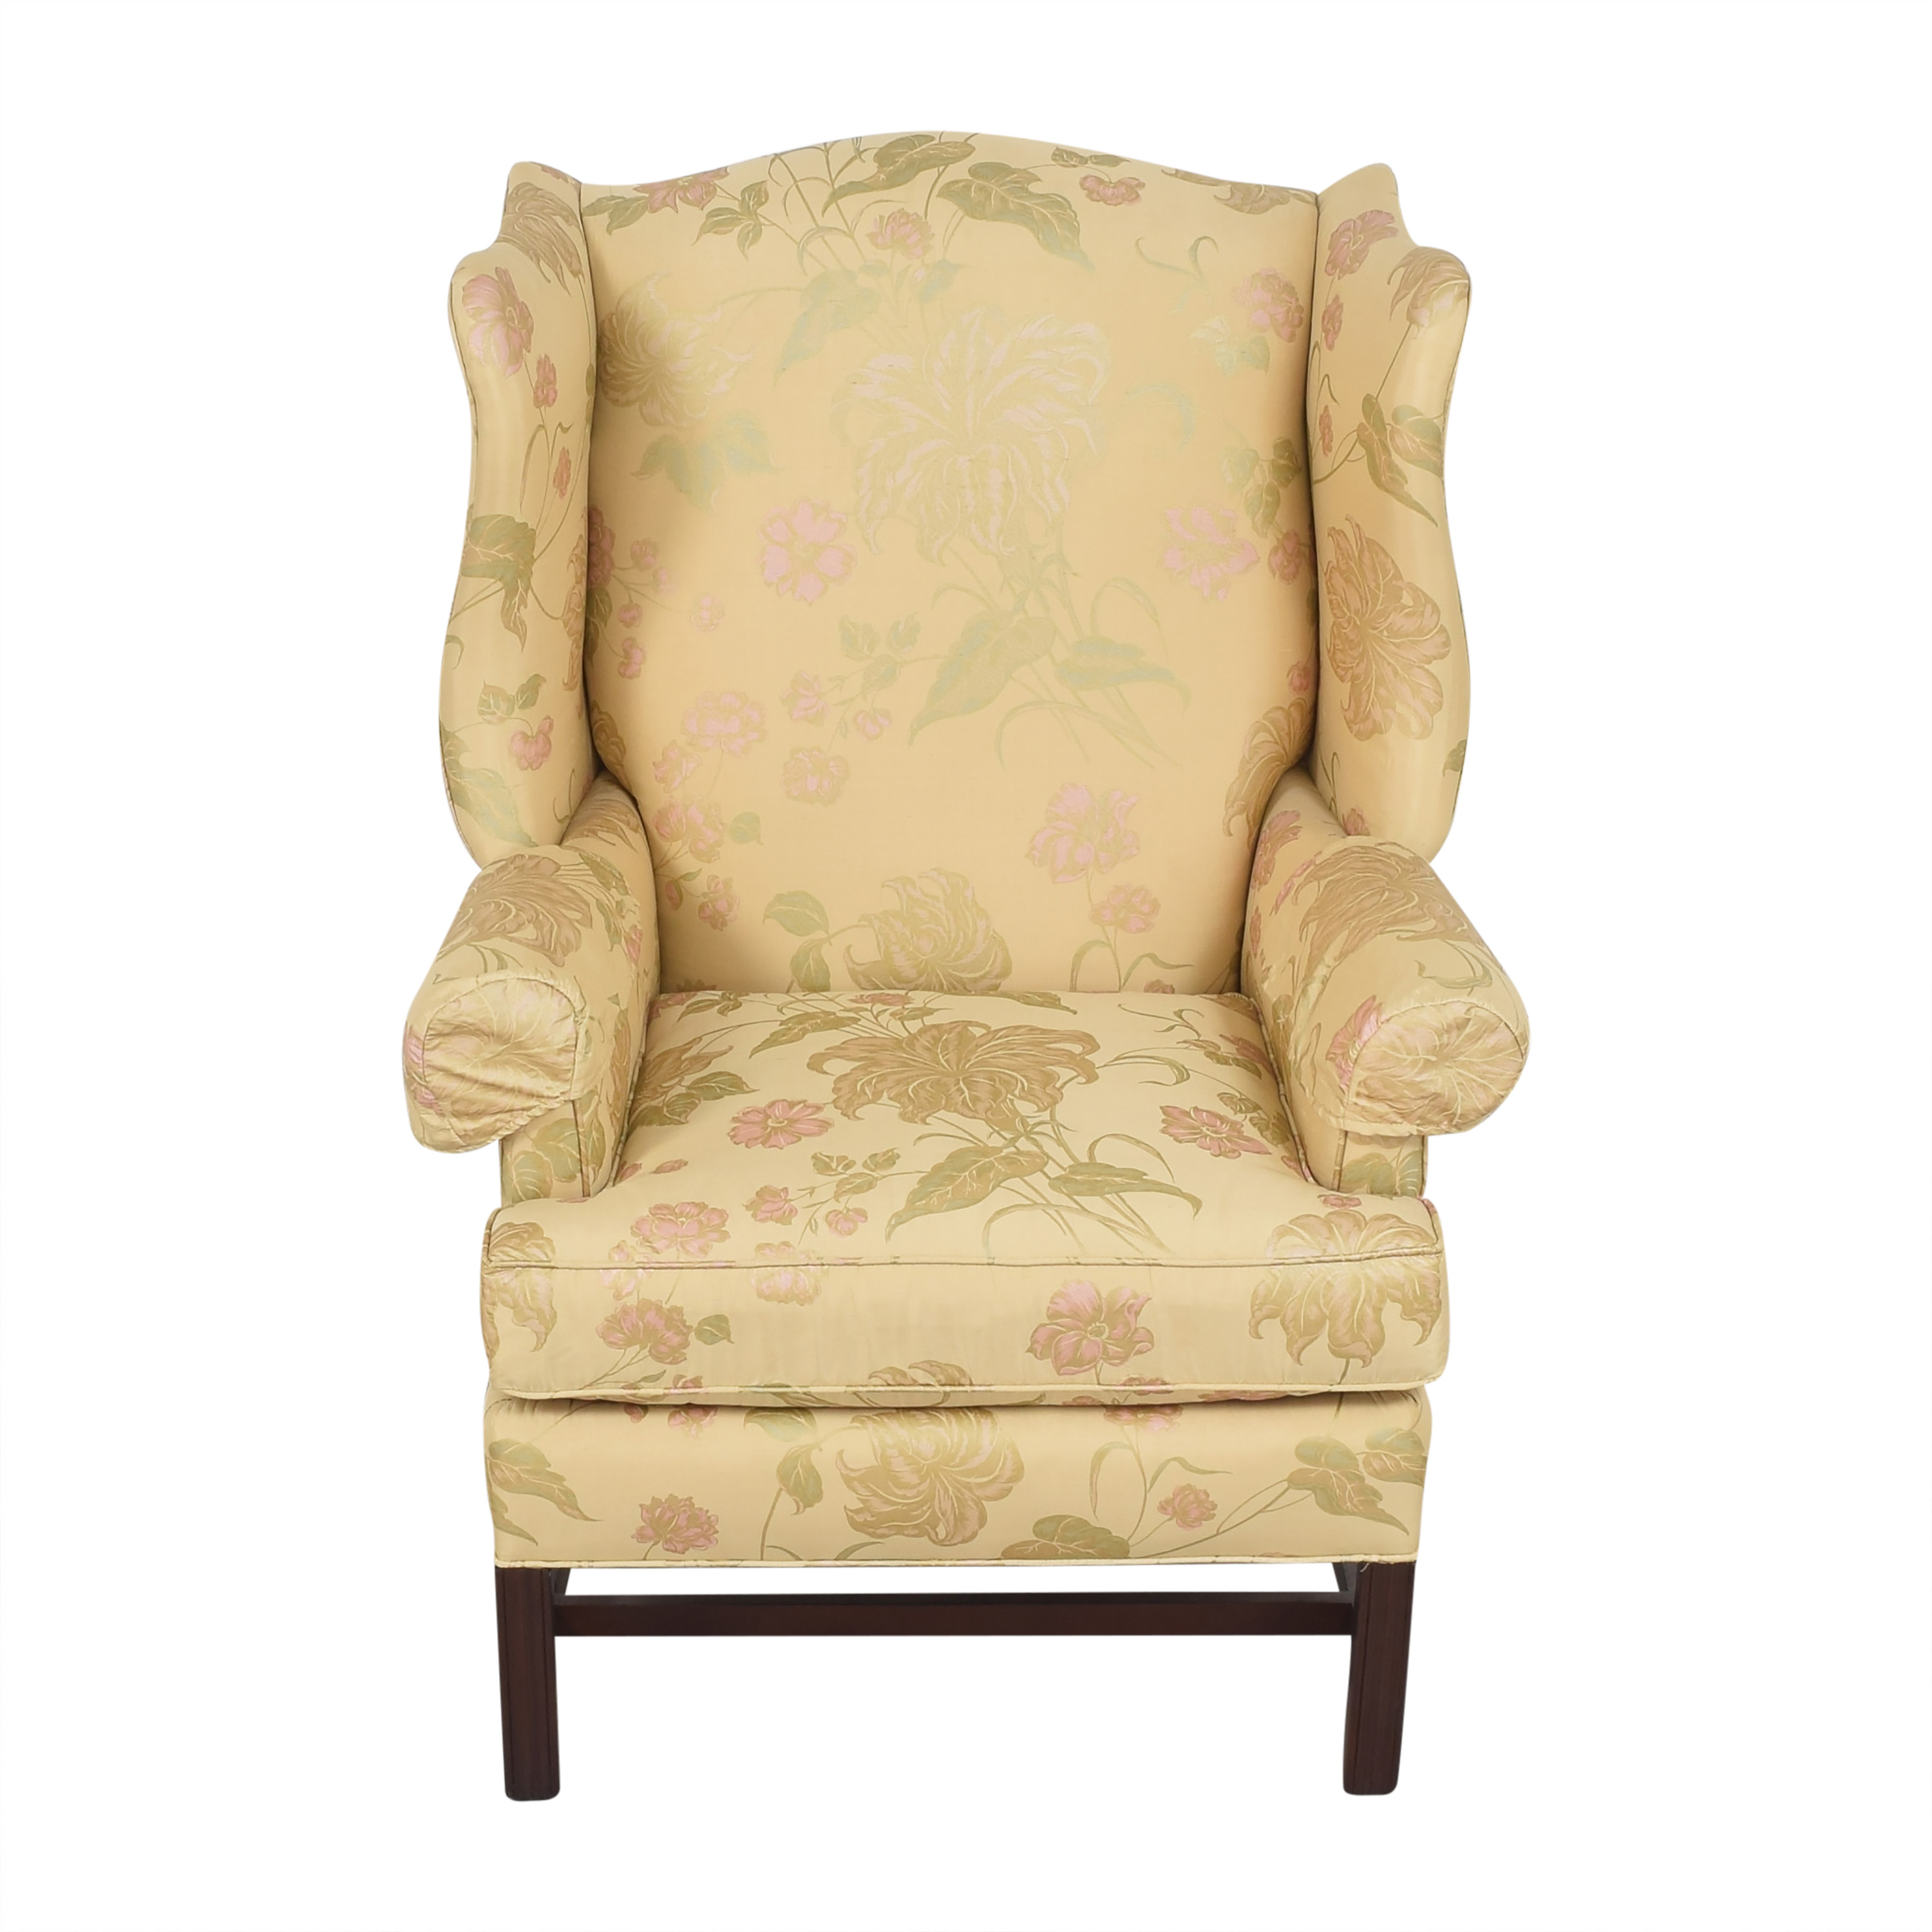 CR Laine CR Laine Upholstered Accent Chair on sale